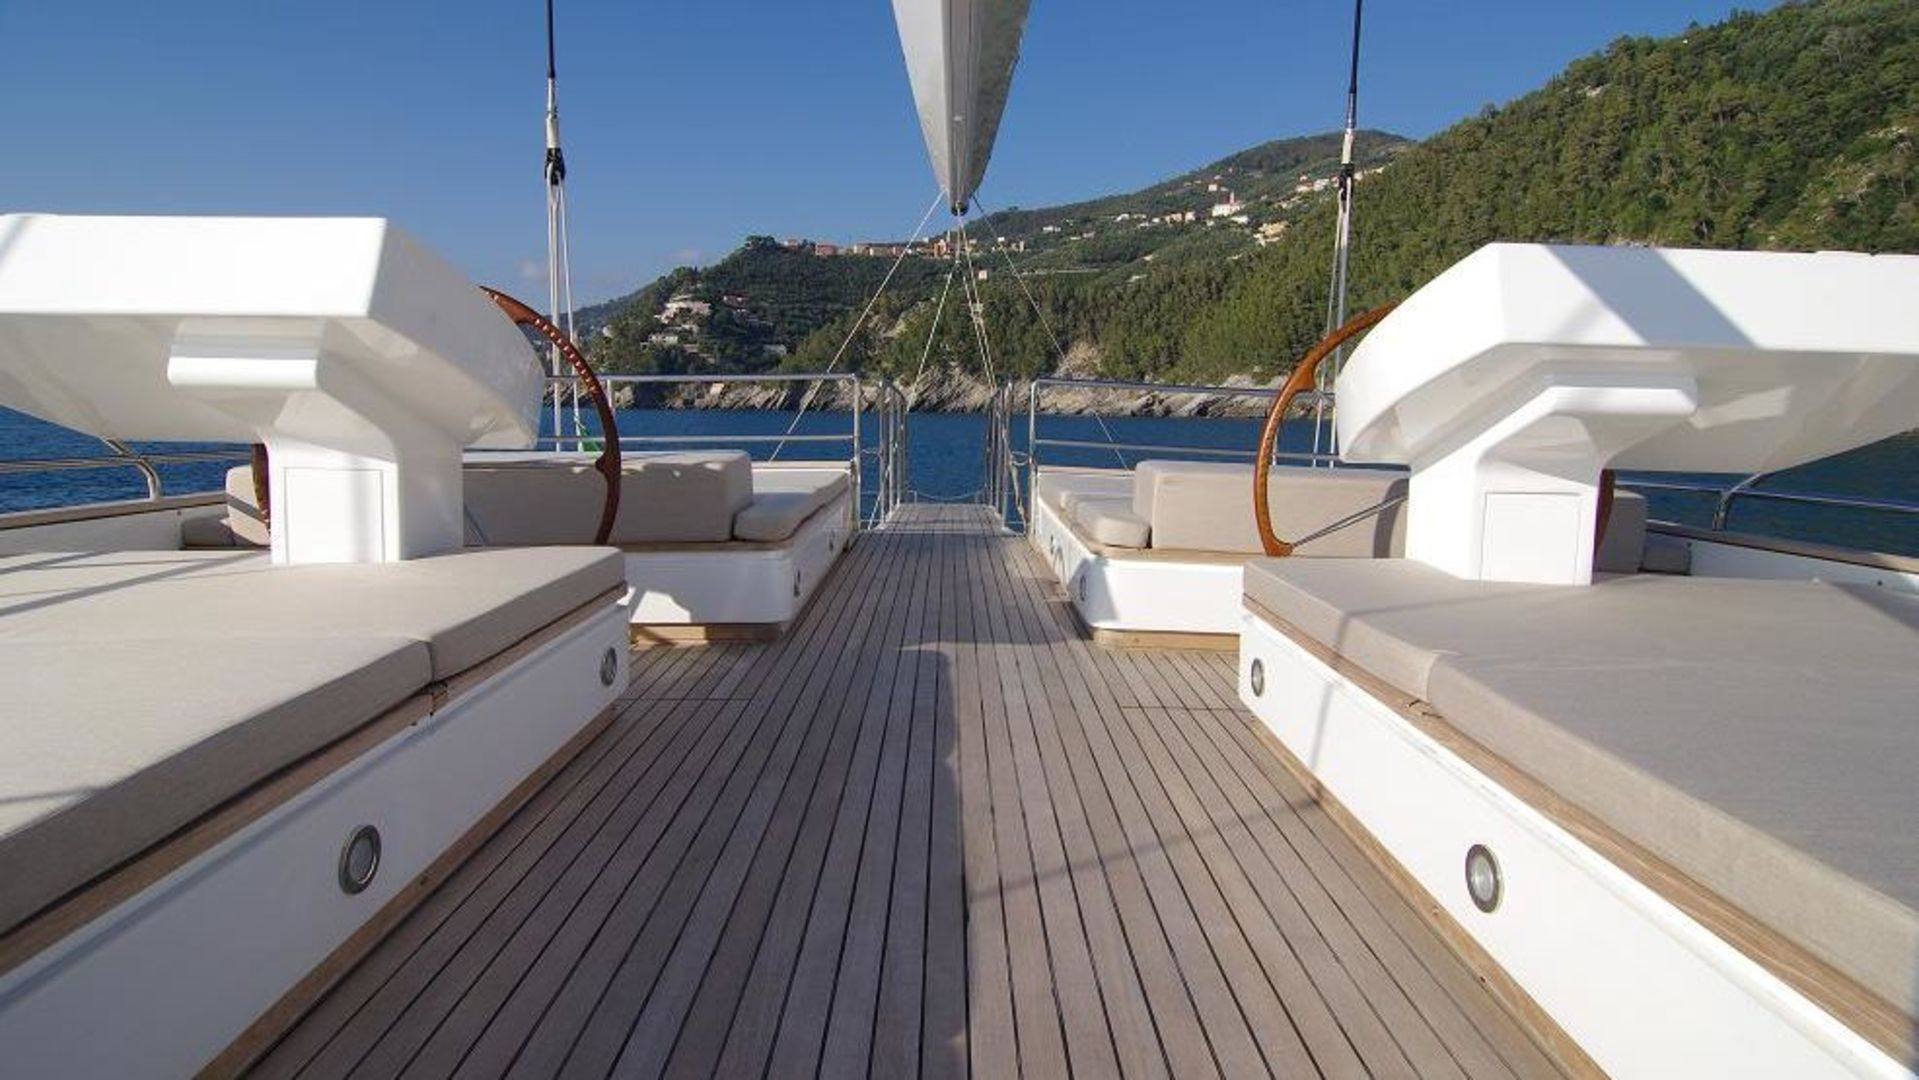 Renaissance yacht for sale